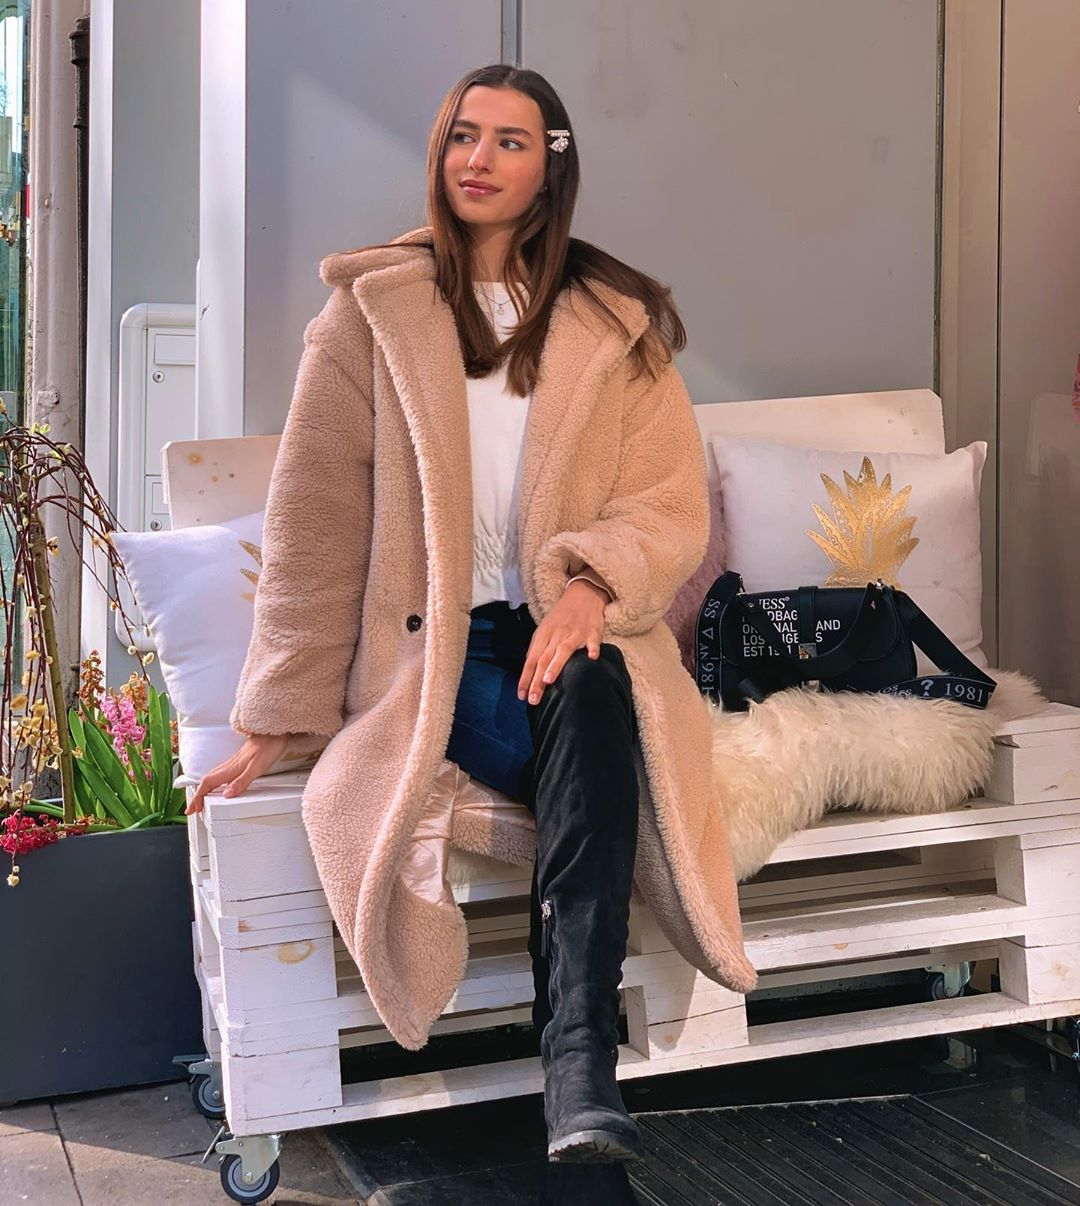 Waiting For Spring In My Cozy Coat Like. Modellifestyle - Beauty Secret